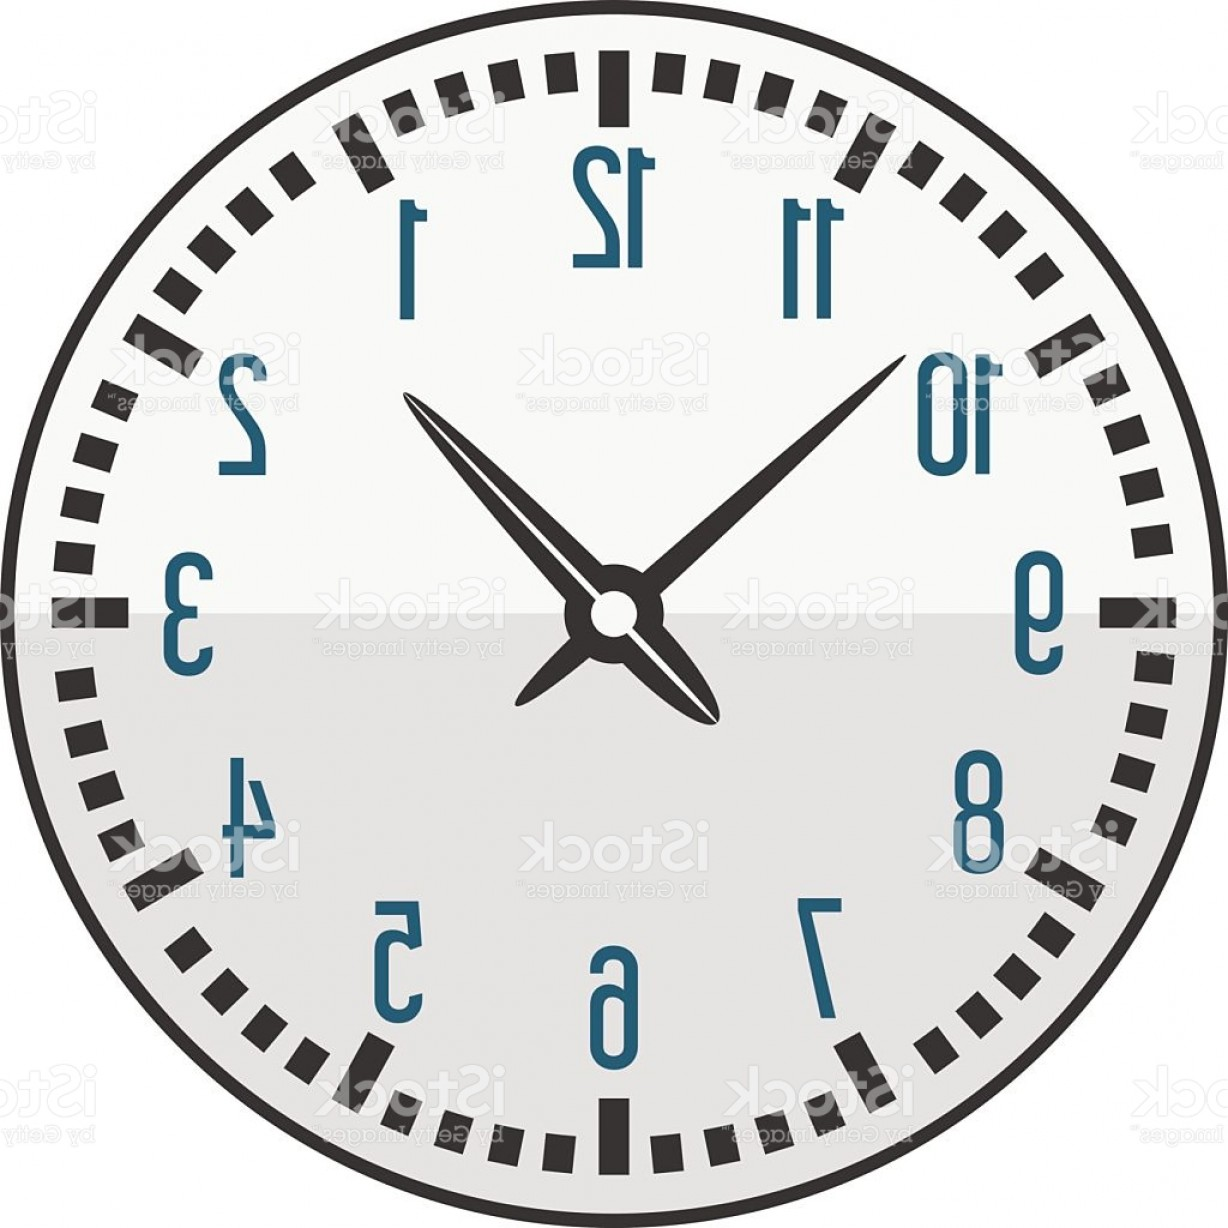 Watch Face Vector: Clock Face Watch Vector Illustration Gm